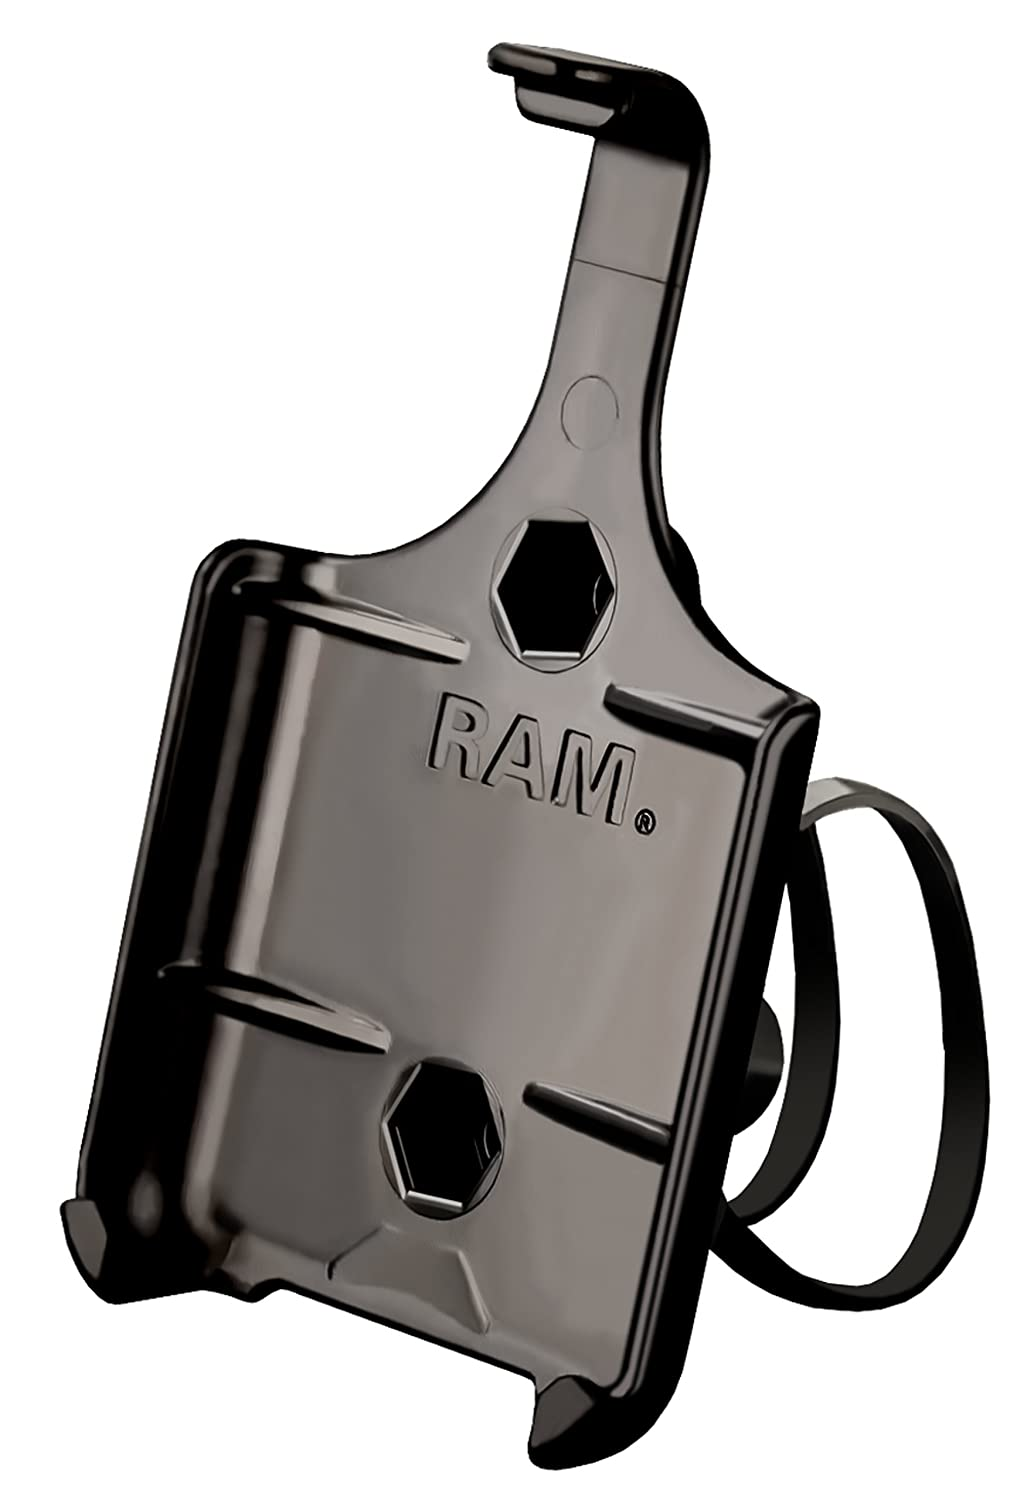 RAM Mounting Systems RAP-274-1-AP6U EZ ON//OFF Handlebar Mount for Apple iPhone 3G /& 3GS National Products Inc.